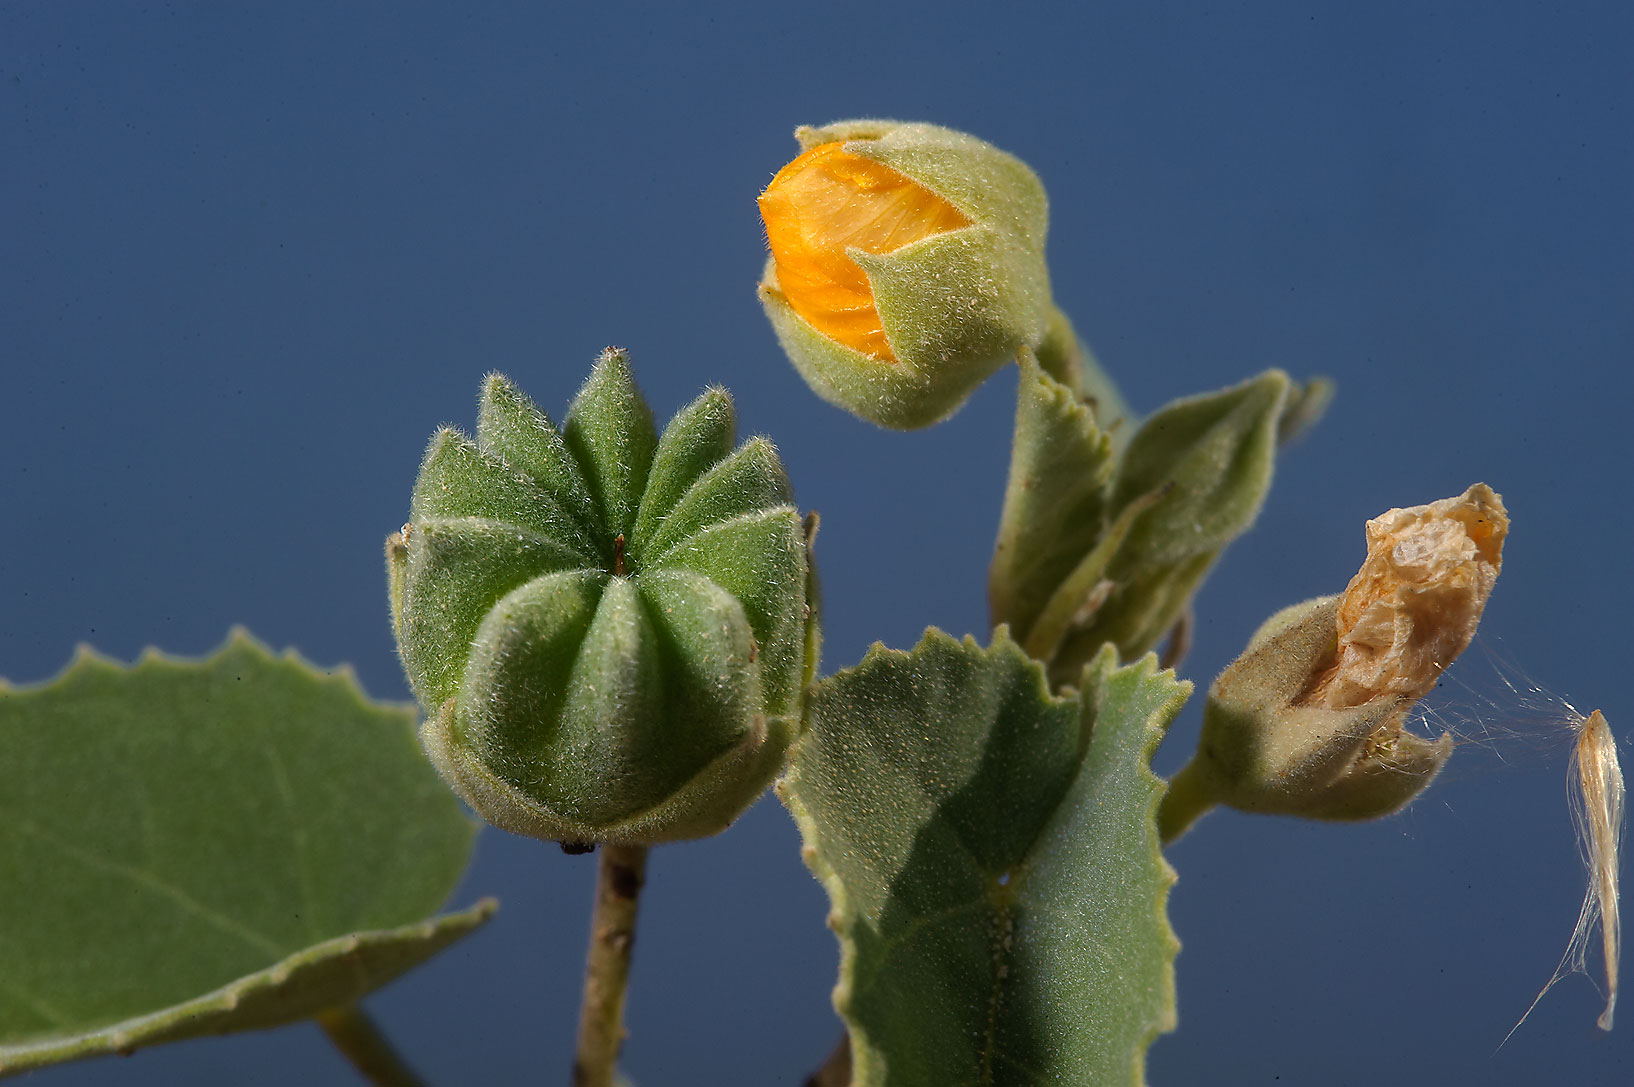 Flower and seeds of Texas Indian-mallow (Abutilon...farms area, in north-western Qatar